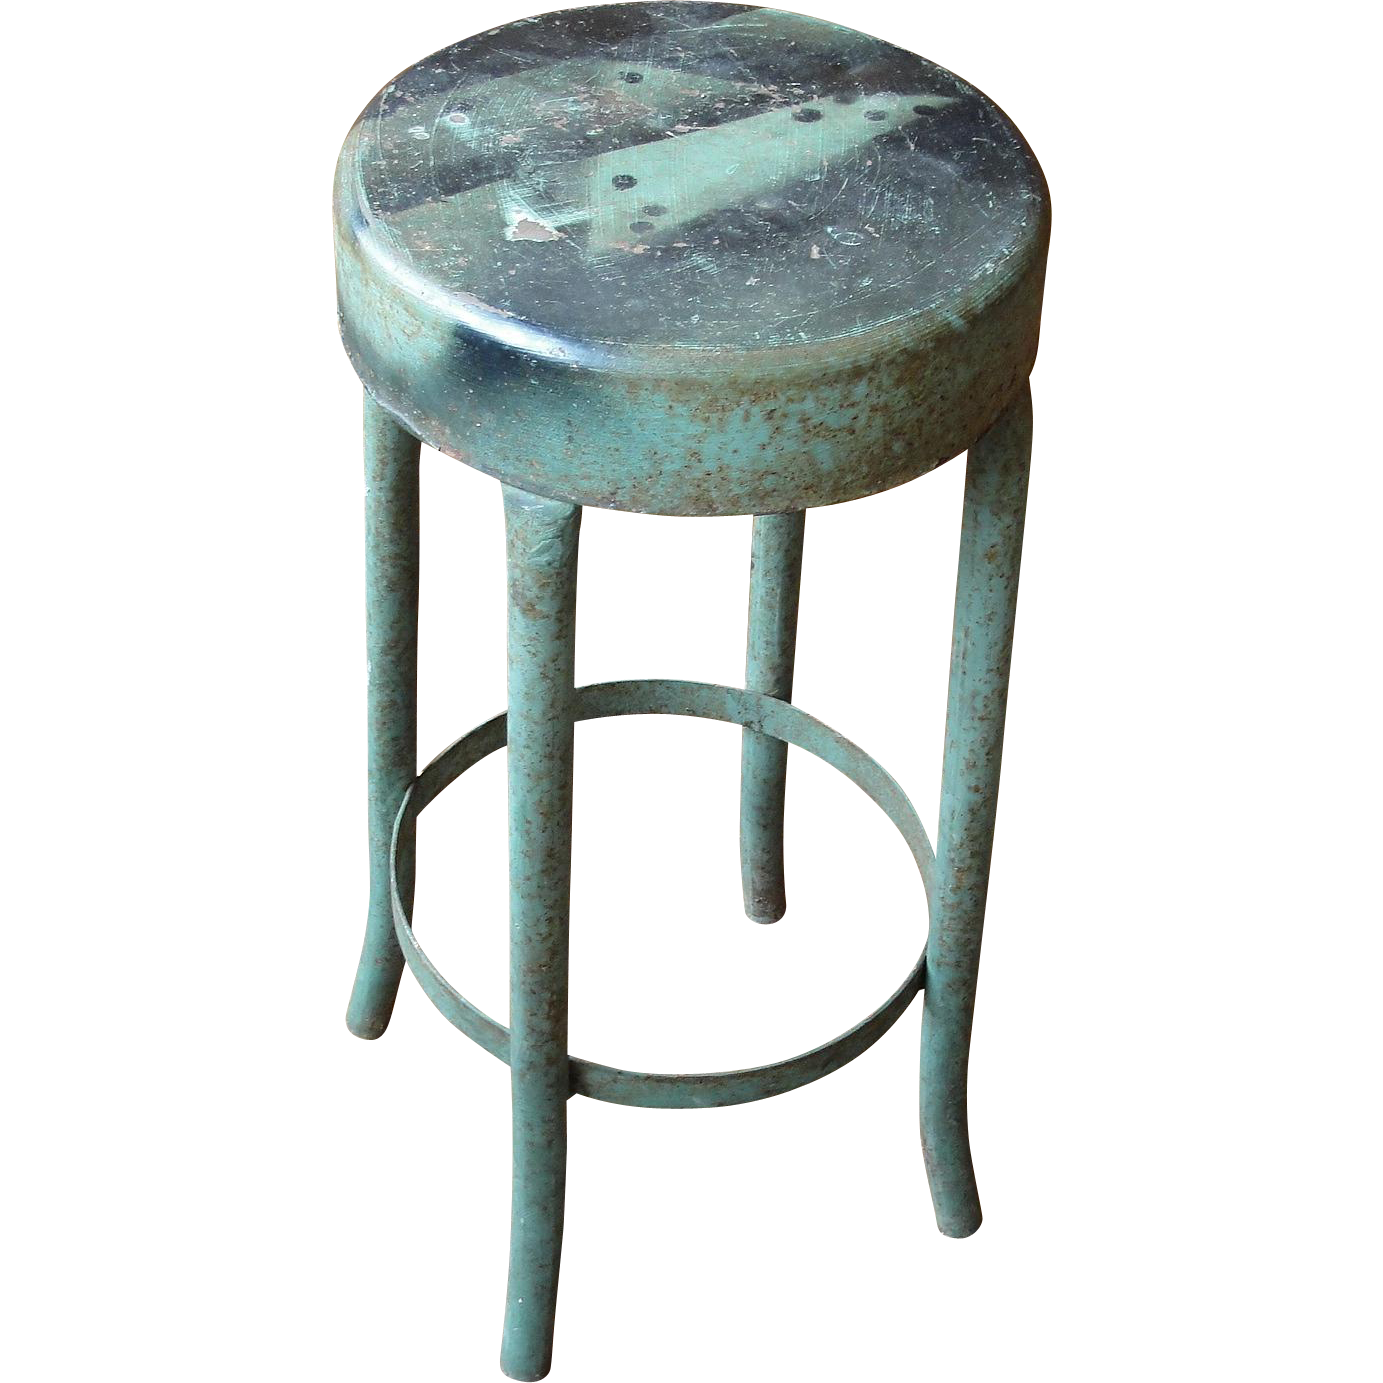 Vintage Industrial Salvage Green Metal Stool  sc 1 st  Ruby Lane & Vintage Industrial Salvage Green Metal Stool from breadandbutter ... islam-shia.org